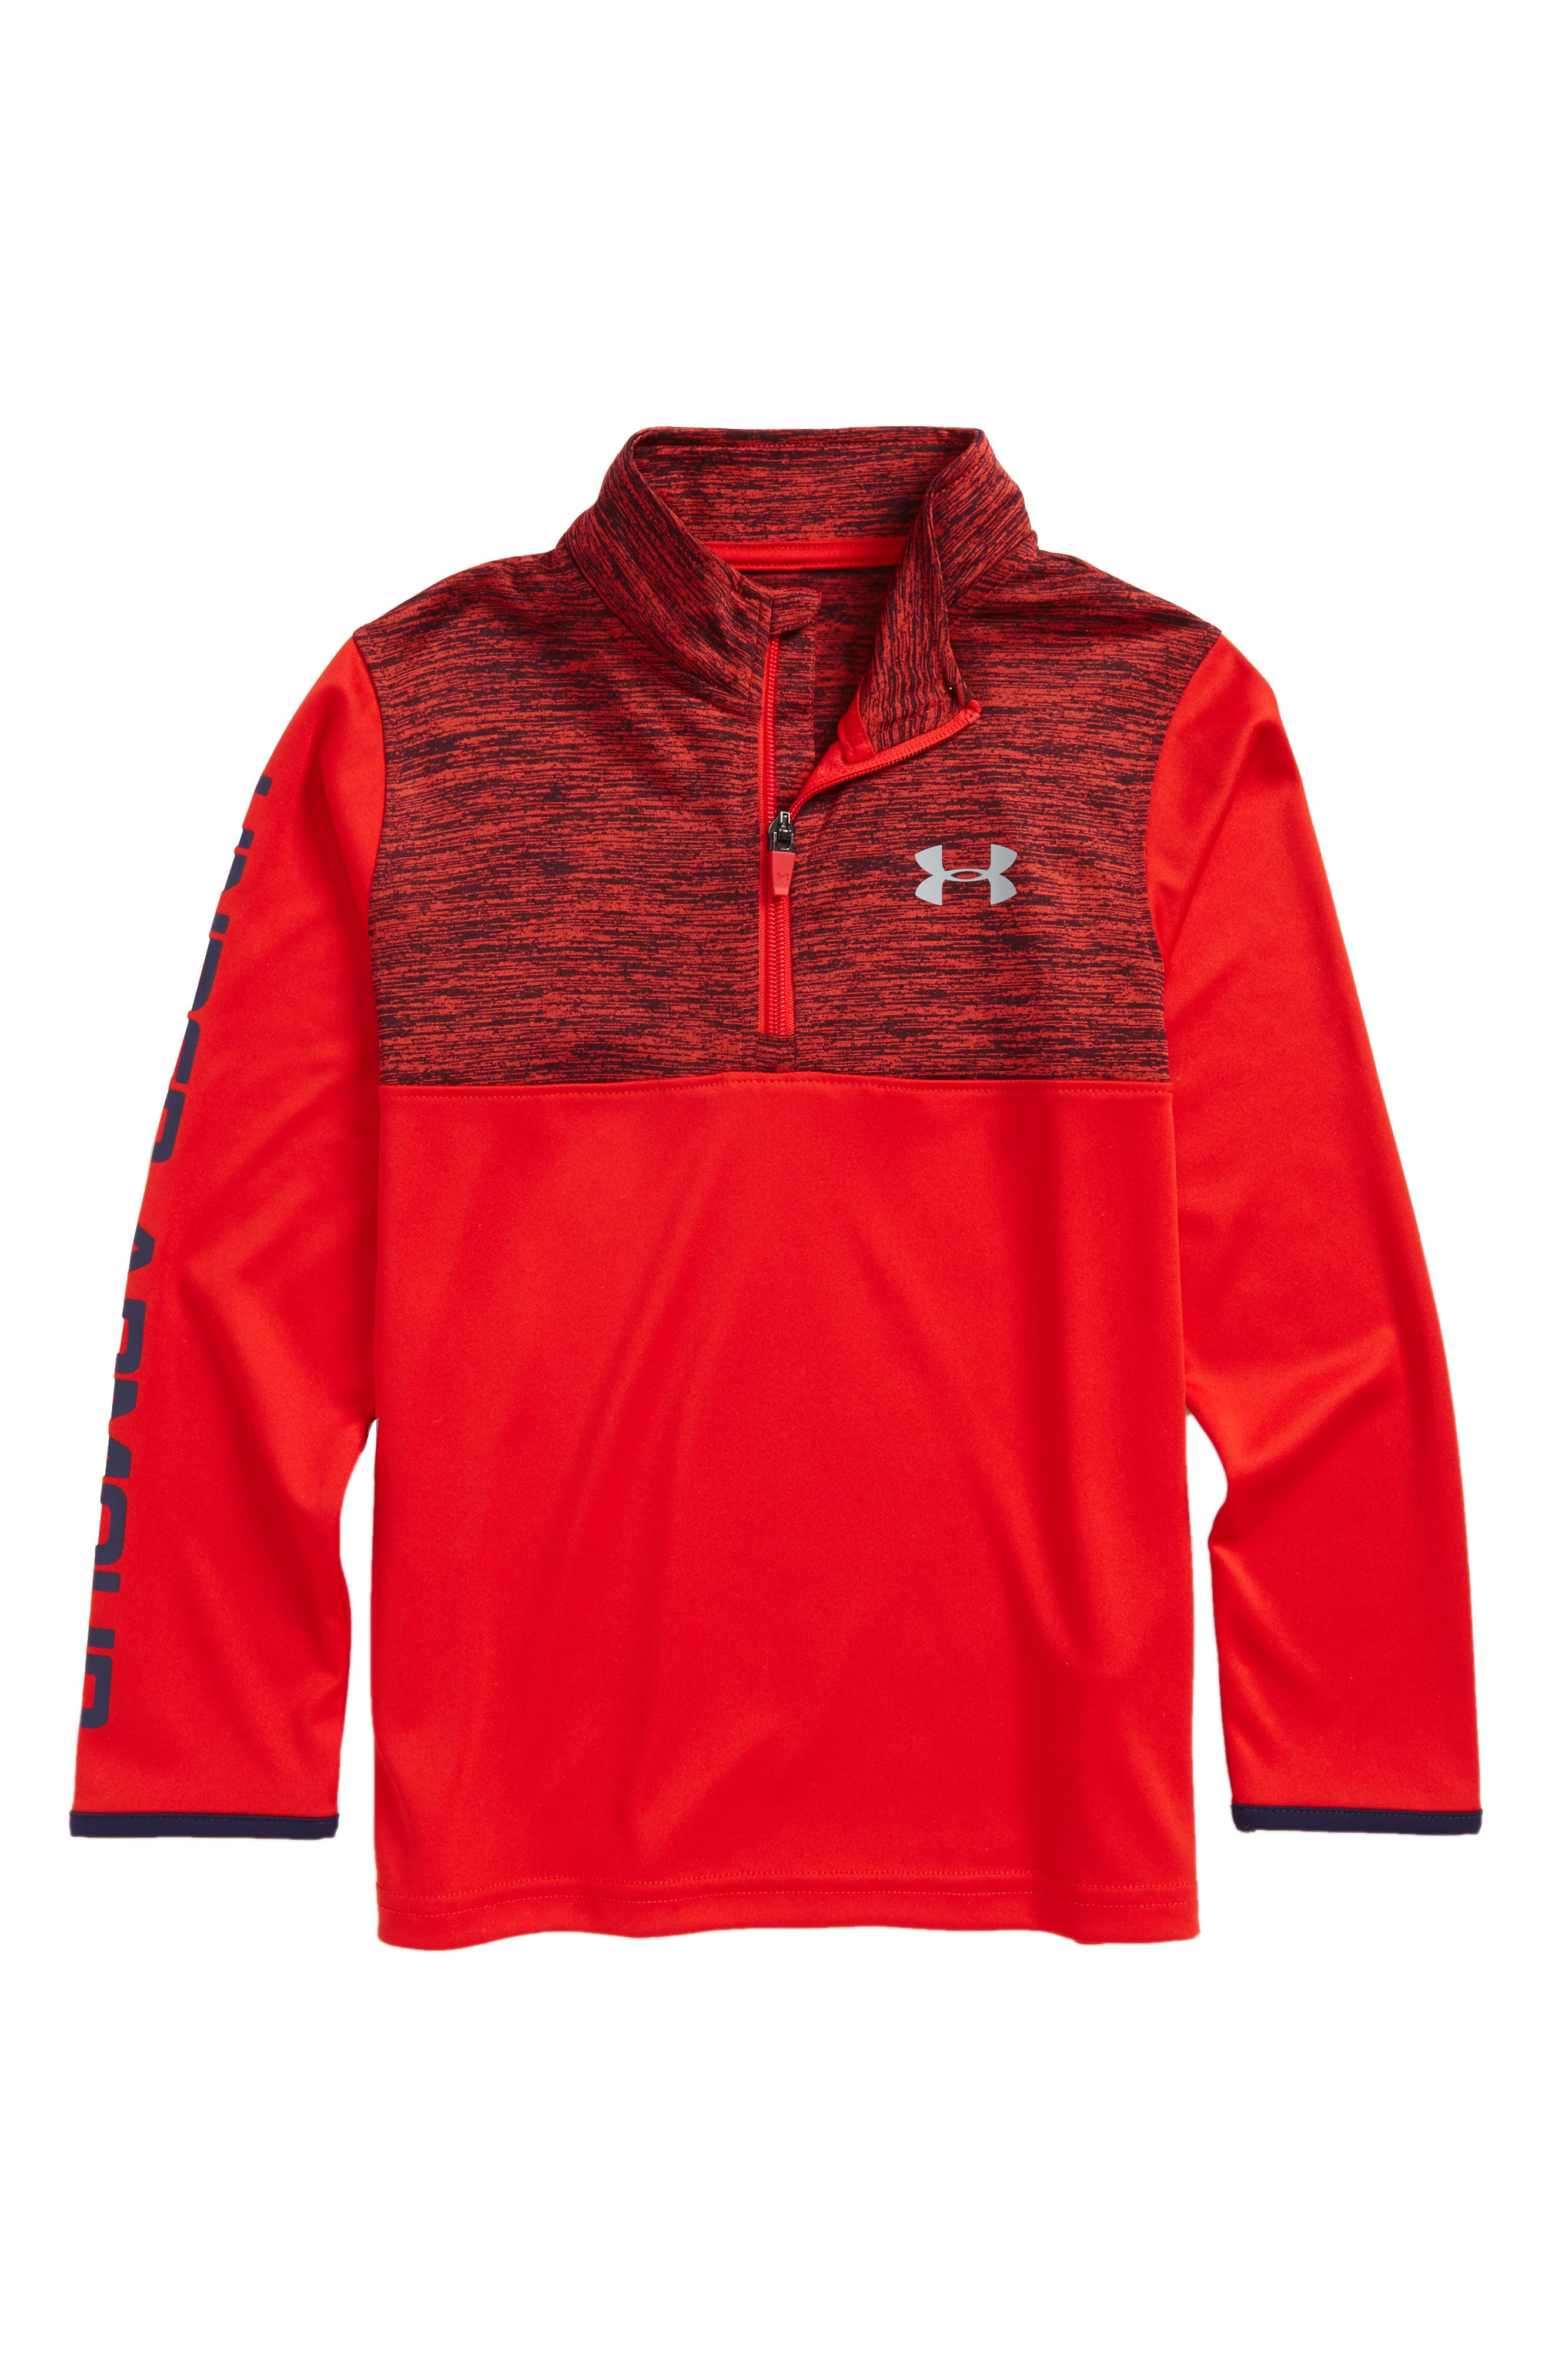 Under Armour Elevation Quarter Zip Pullover (Toddler Boys & Little Boys)